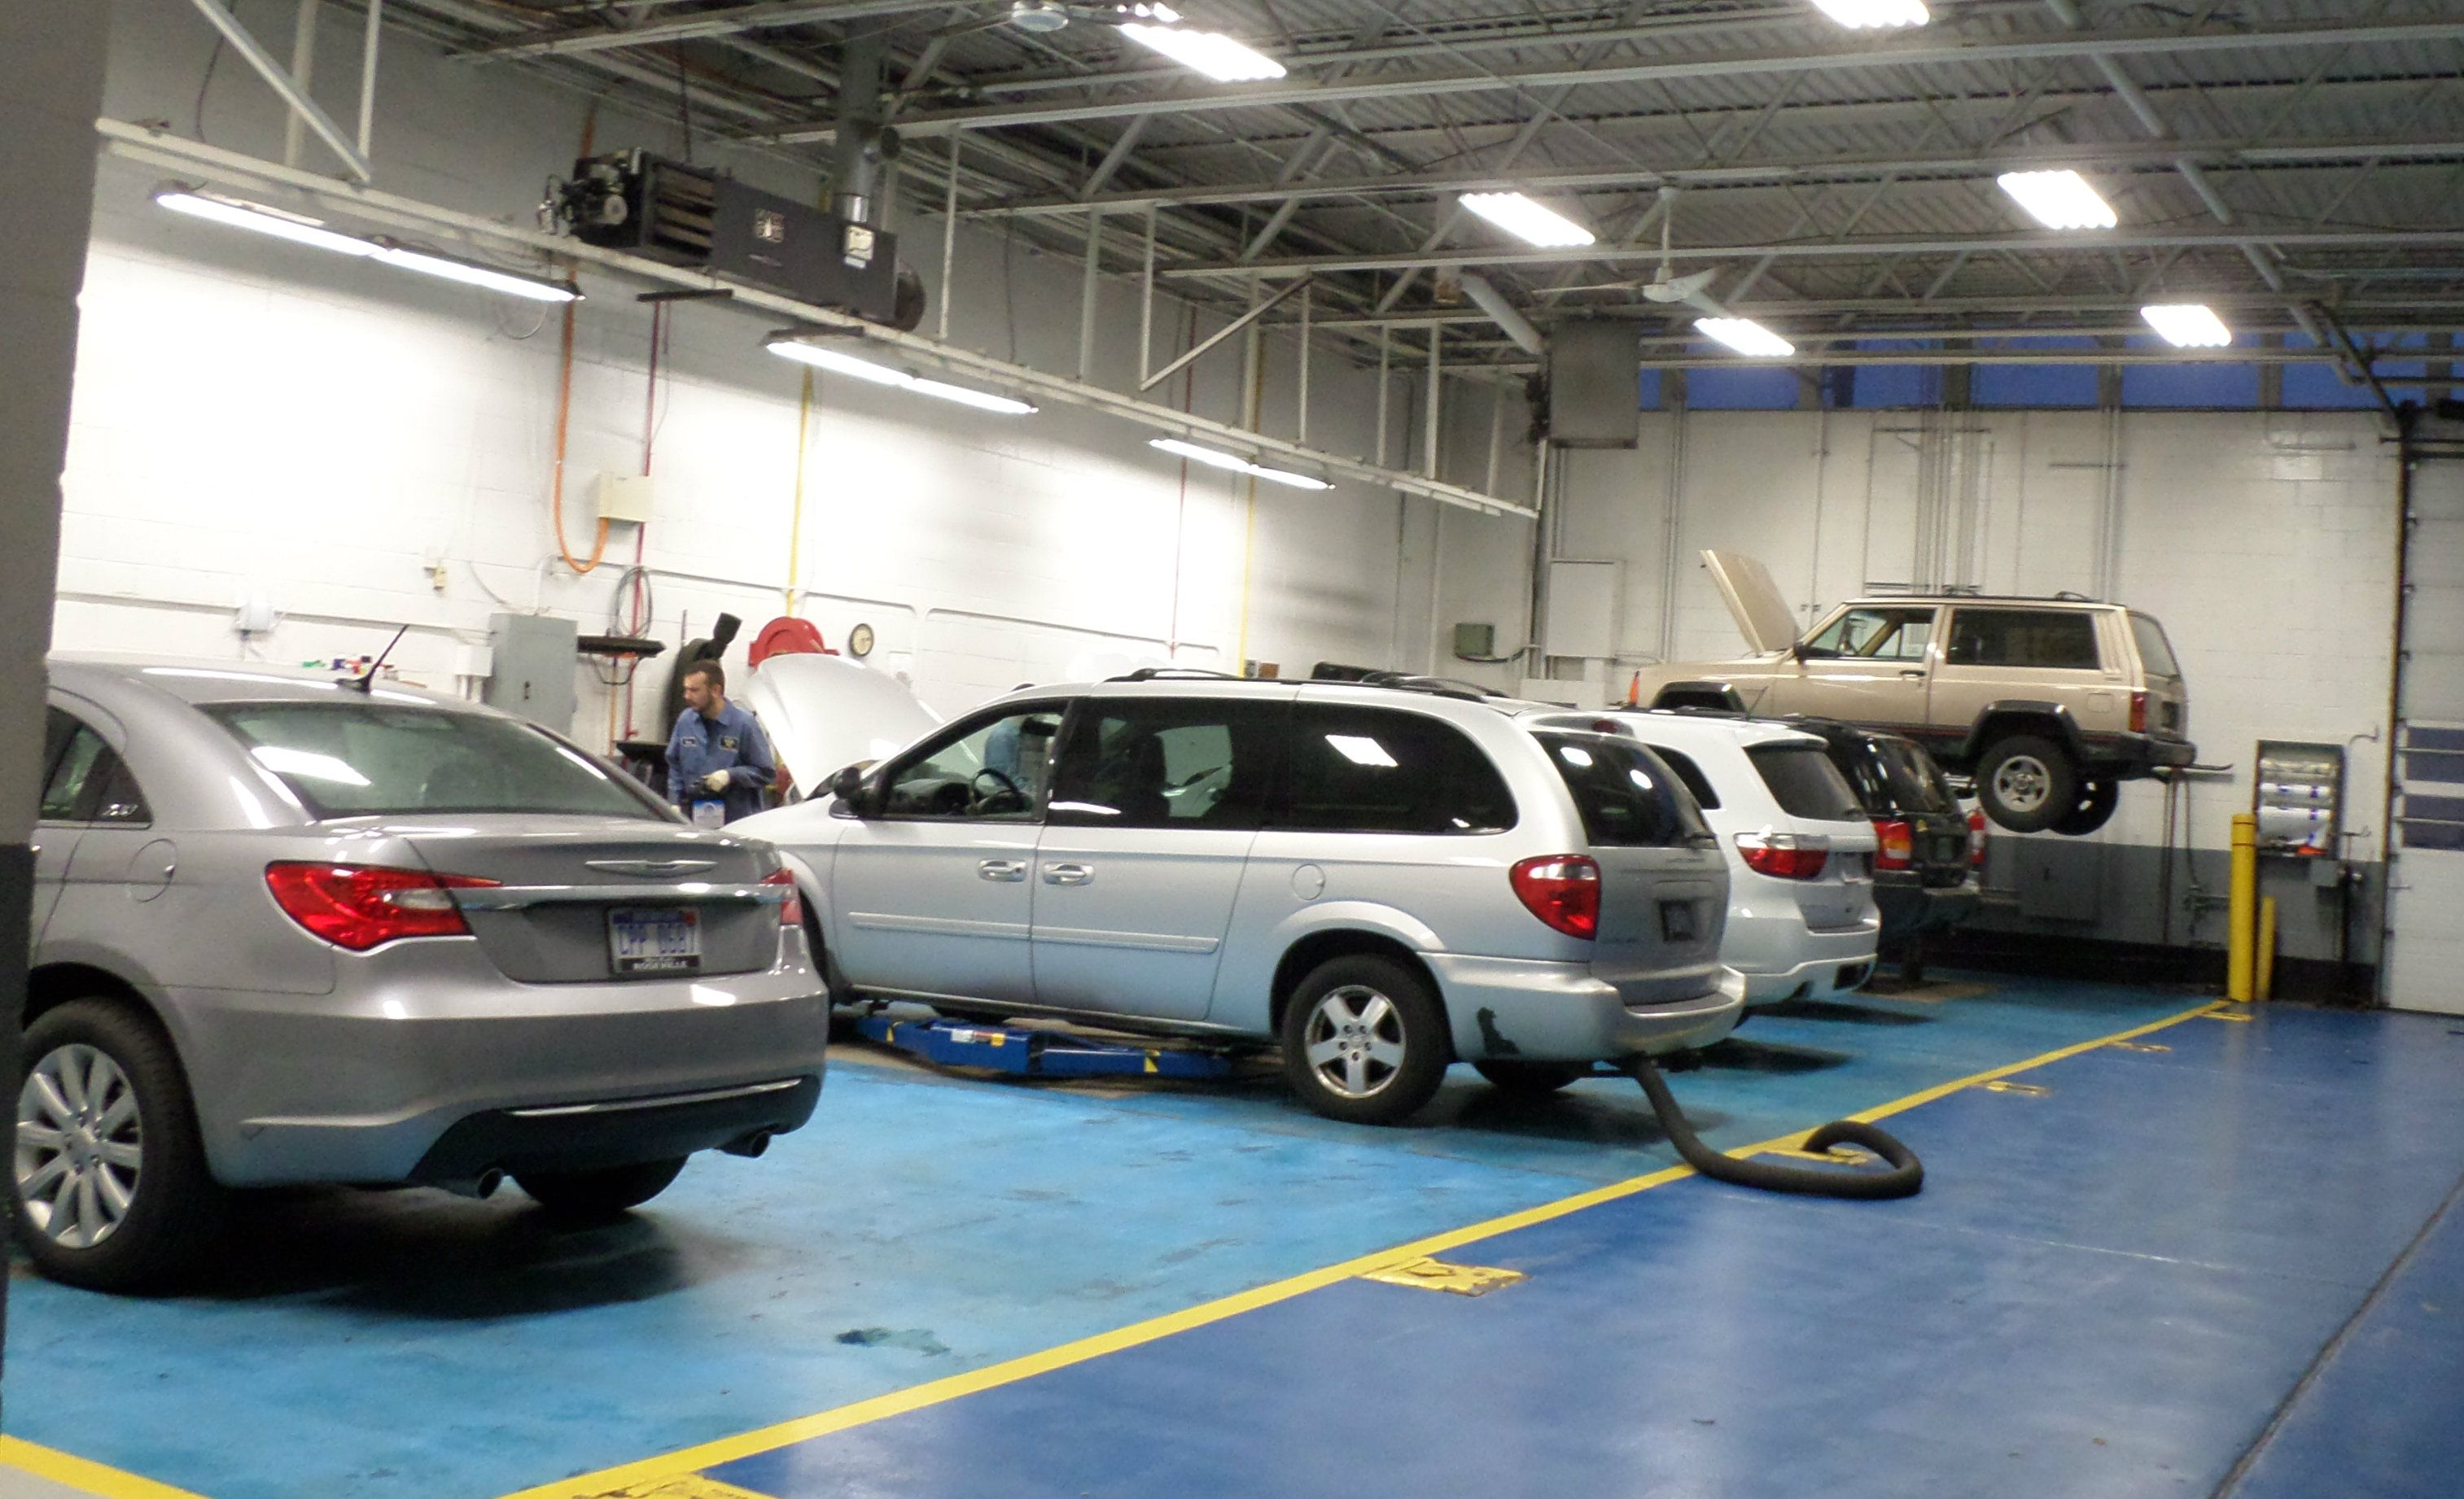 How Can We Improve Our Service Department We Value Our Customers Feedback And Would Like To Hear From You Chrysler Dodge Jeep Chrysler Customer Feedback